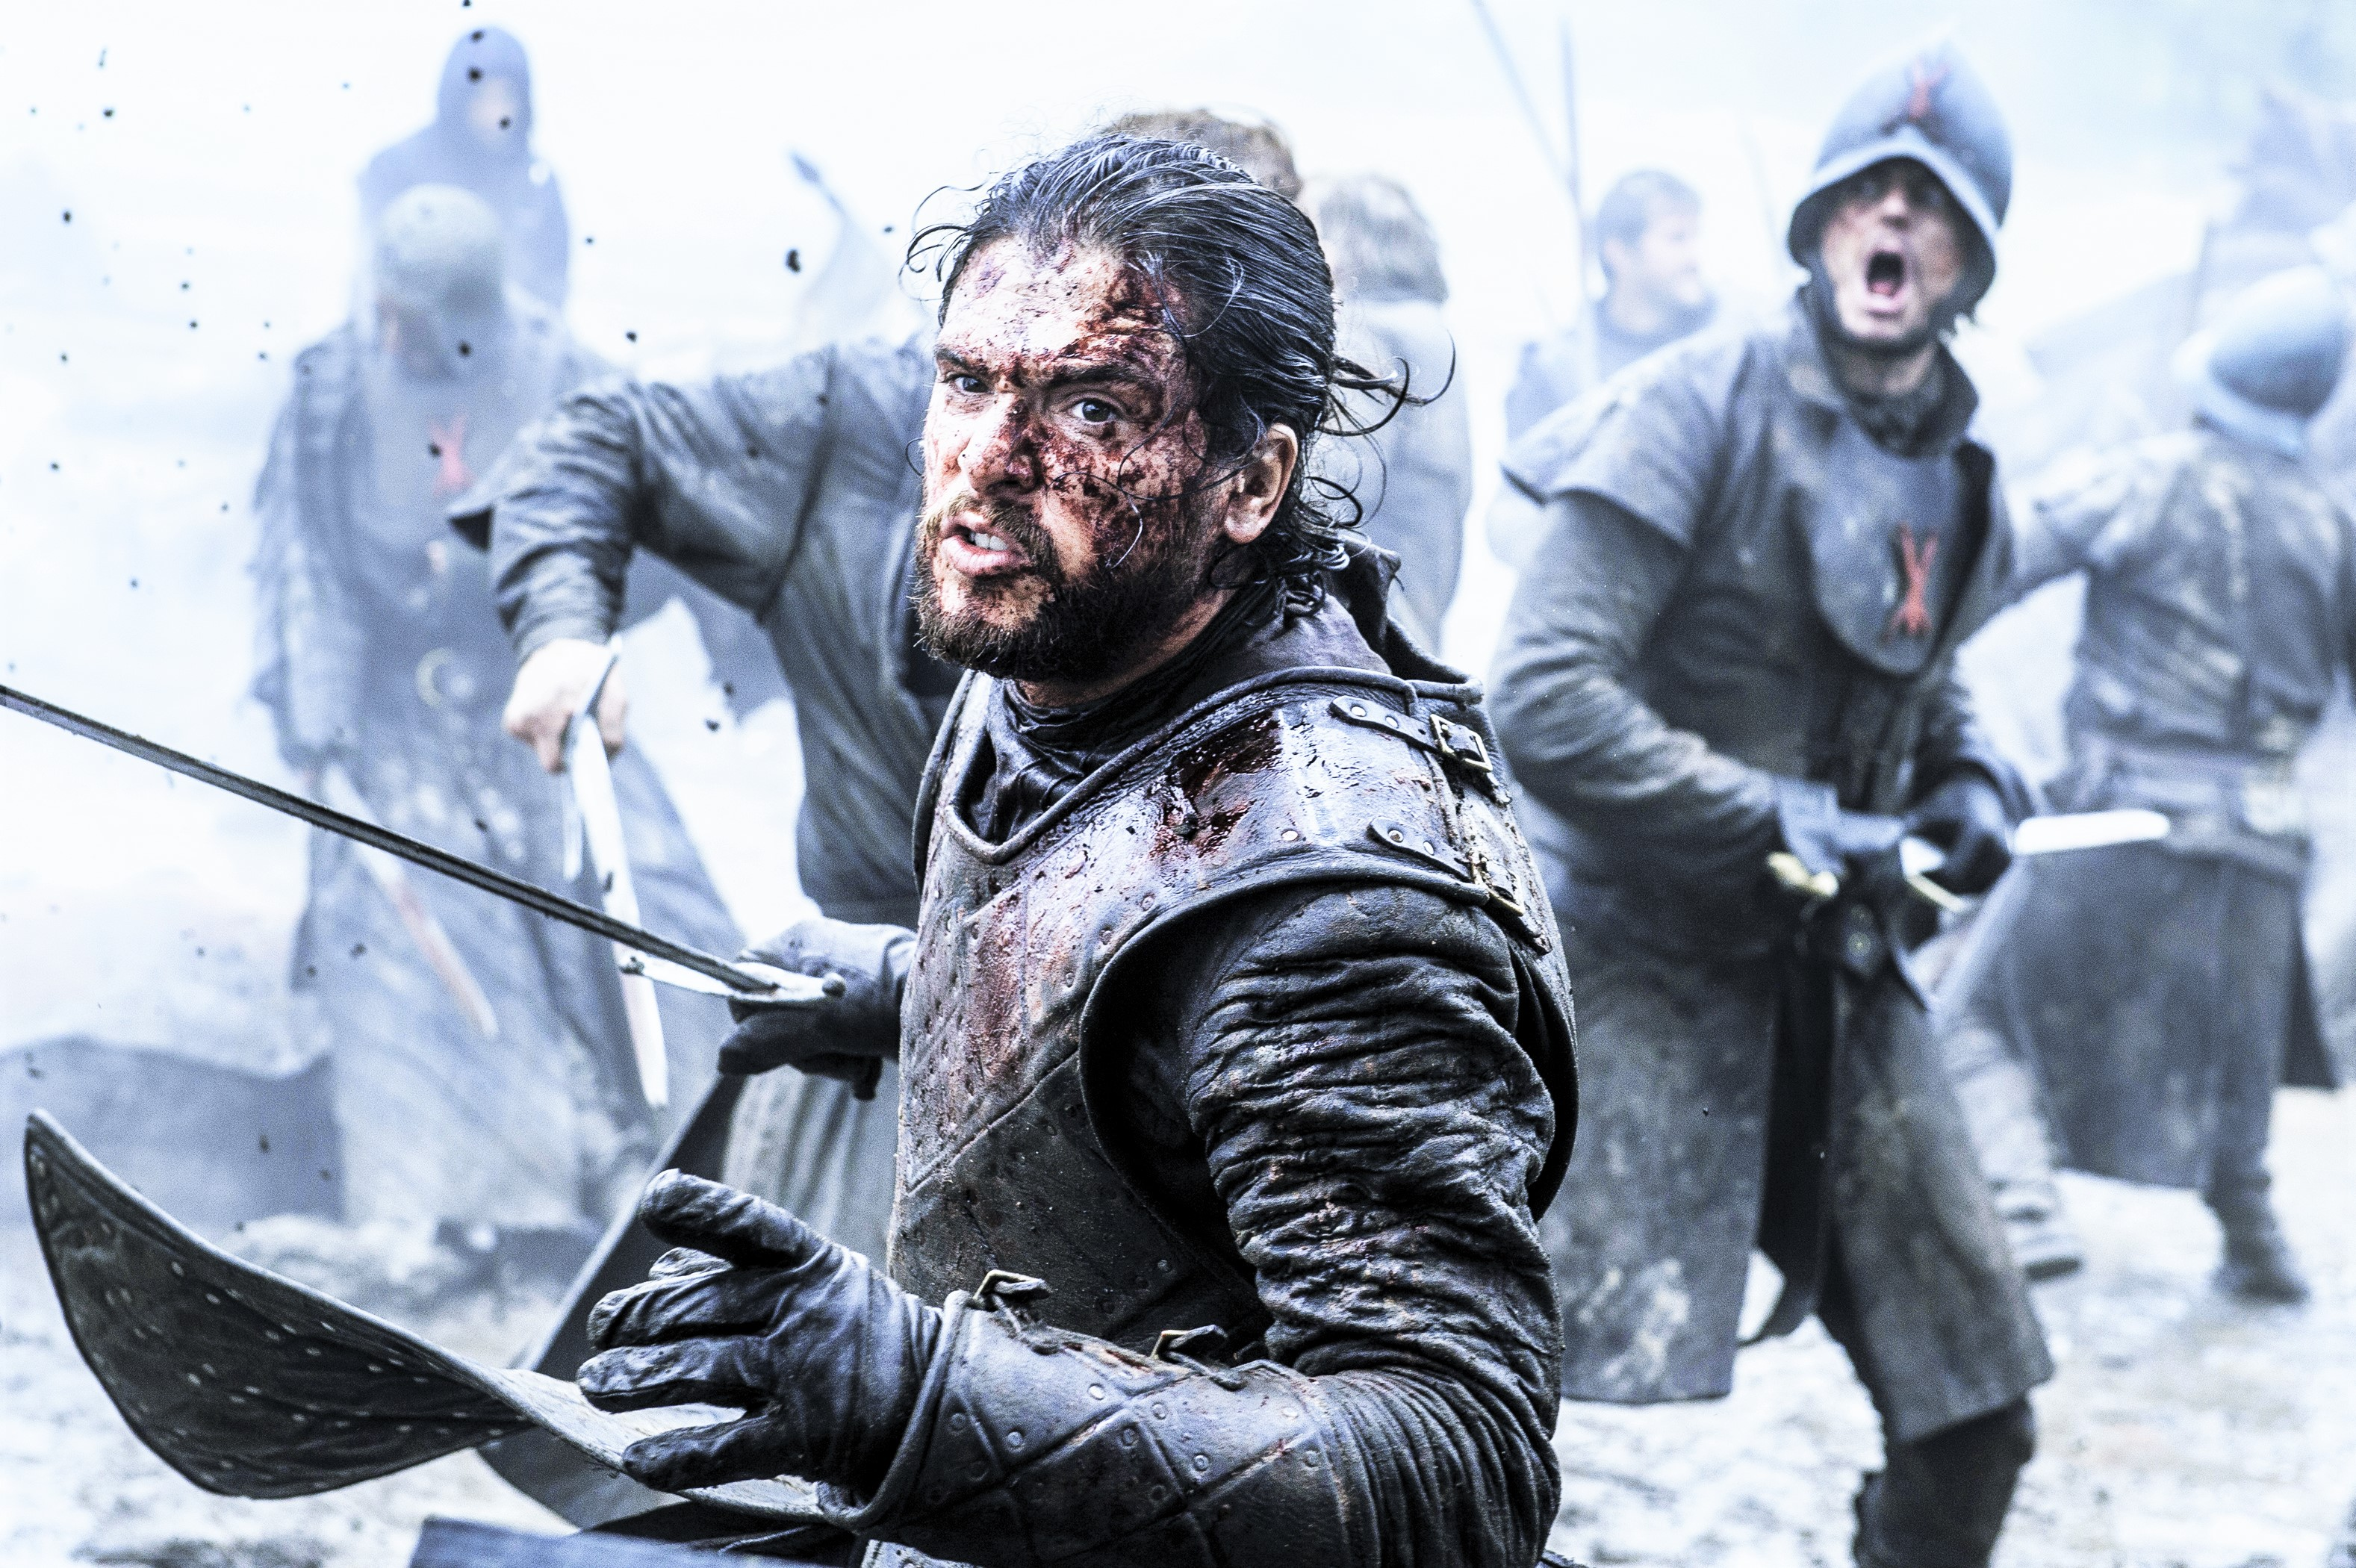 Jon Snow Battle of the Bastards 609 Winterfell